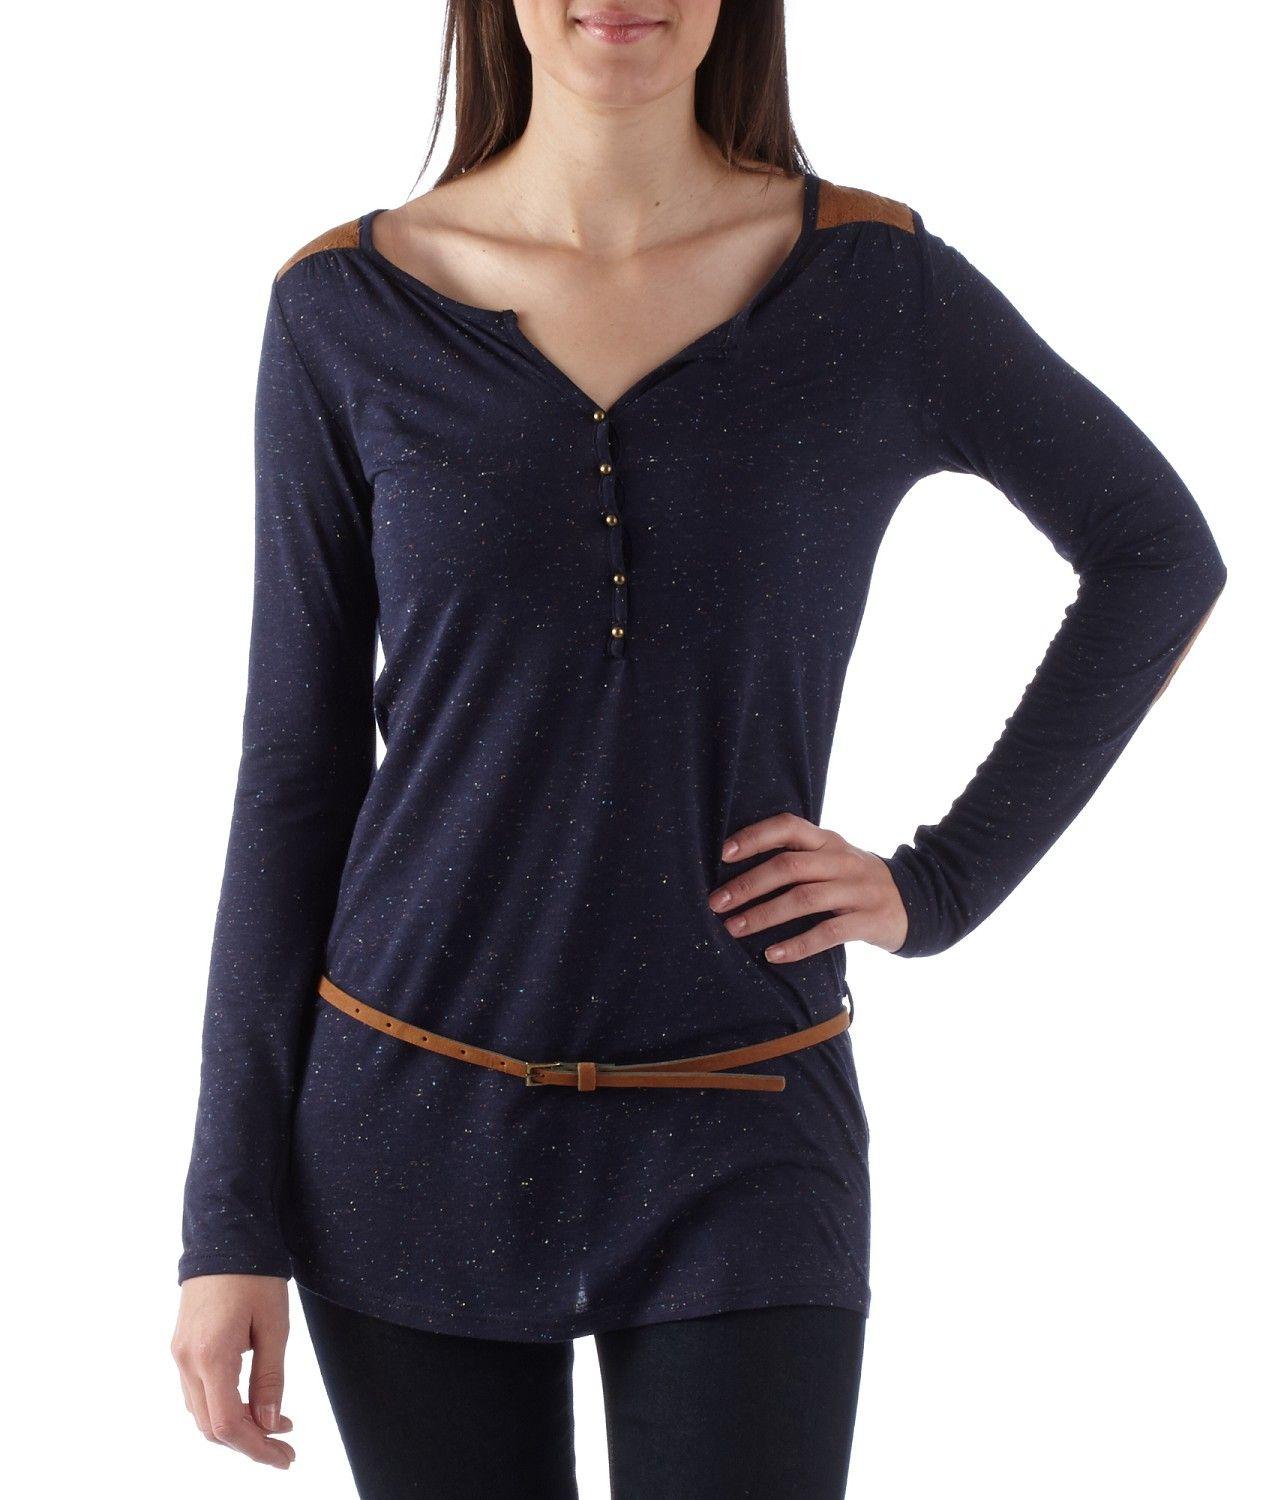 Women's tunic with shoulder inserts